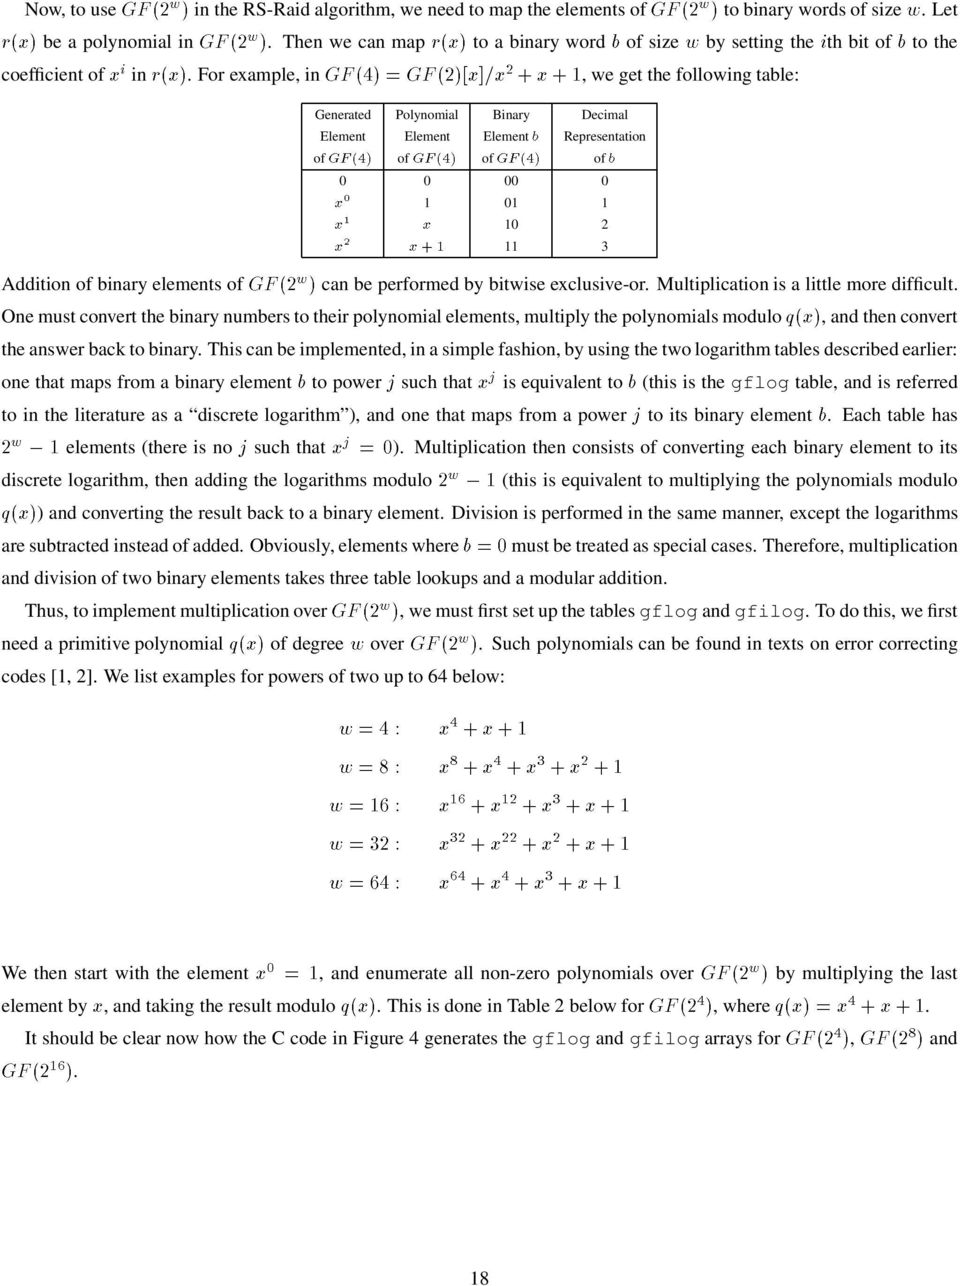 elements of can be performed by bitwise exclusive-or Multiplication is a little more difficult One must convert the binary numbers to their polynomial elements, multiply the polynomials modulo, and